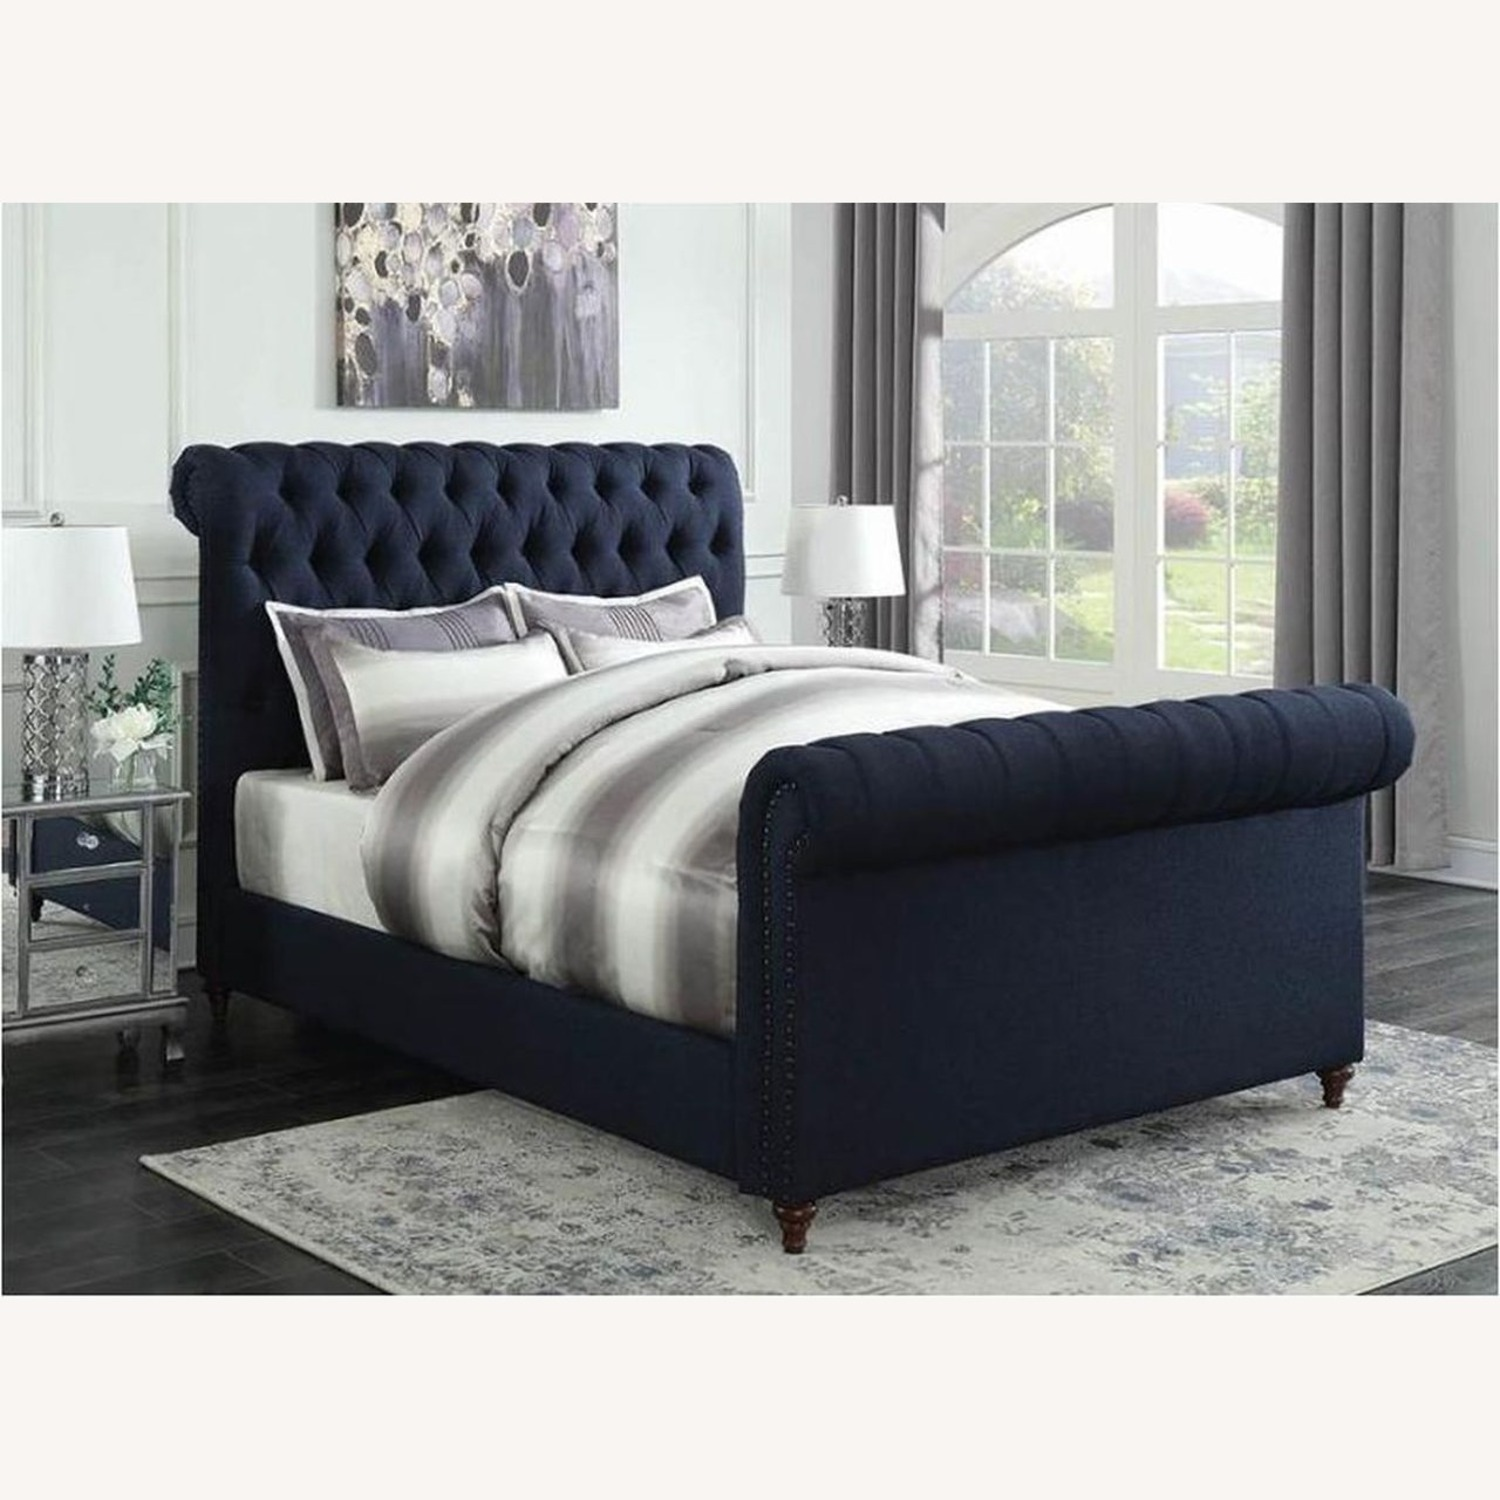 King Bed In Navy Blue Woven Fabric - image-4